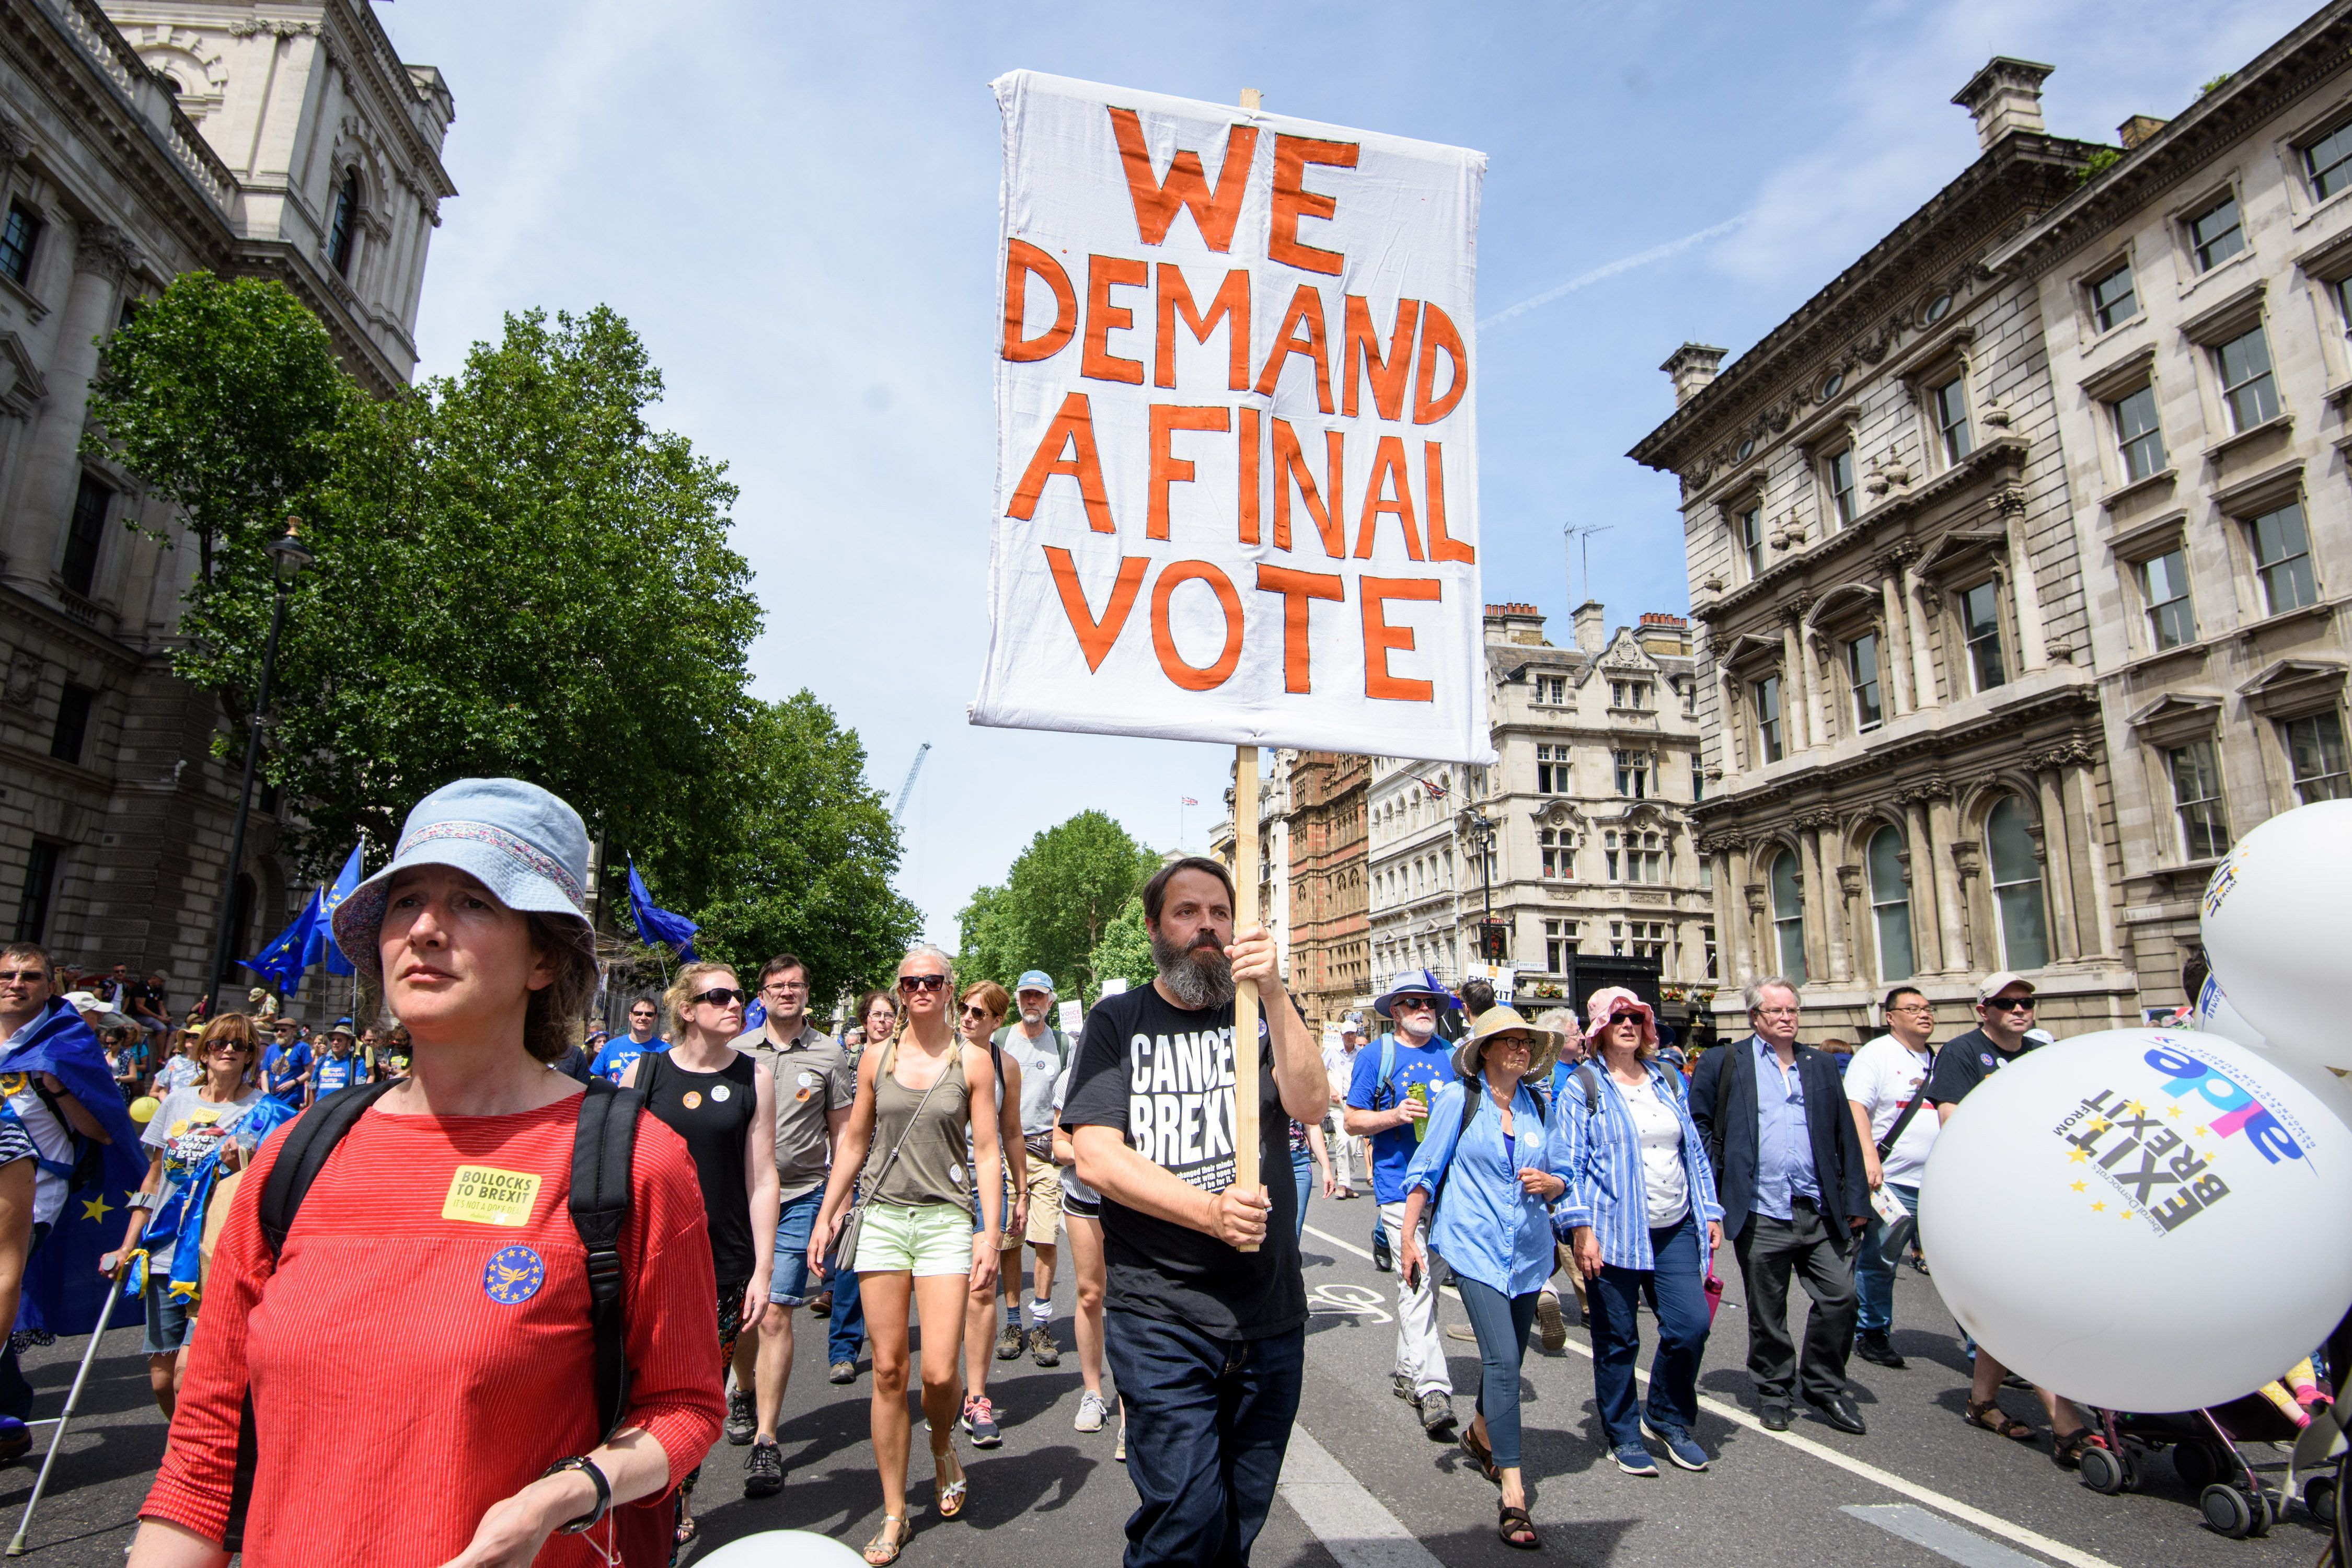 Anti-Brexit demonstrators fill Parliament Square in central London, during the People's Vote march in June 2018.